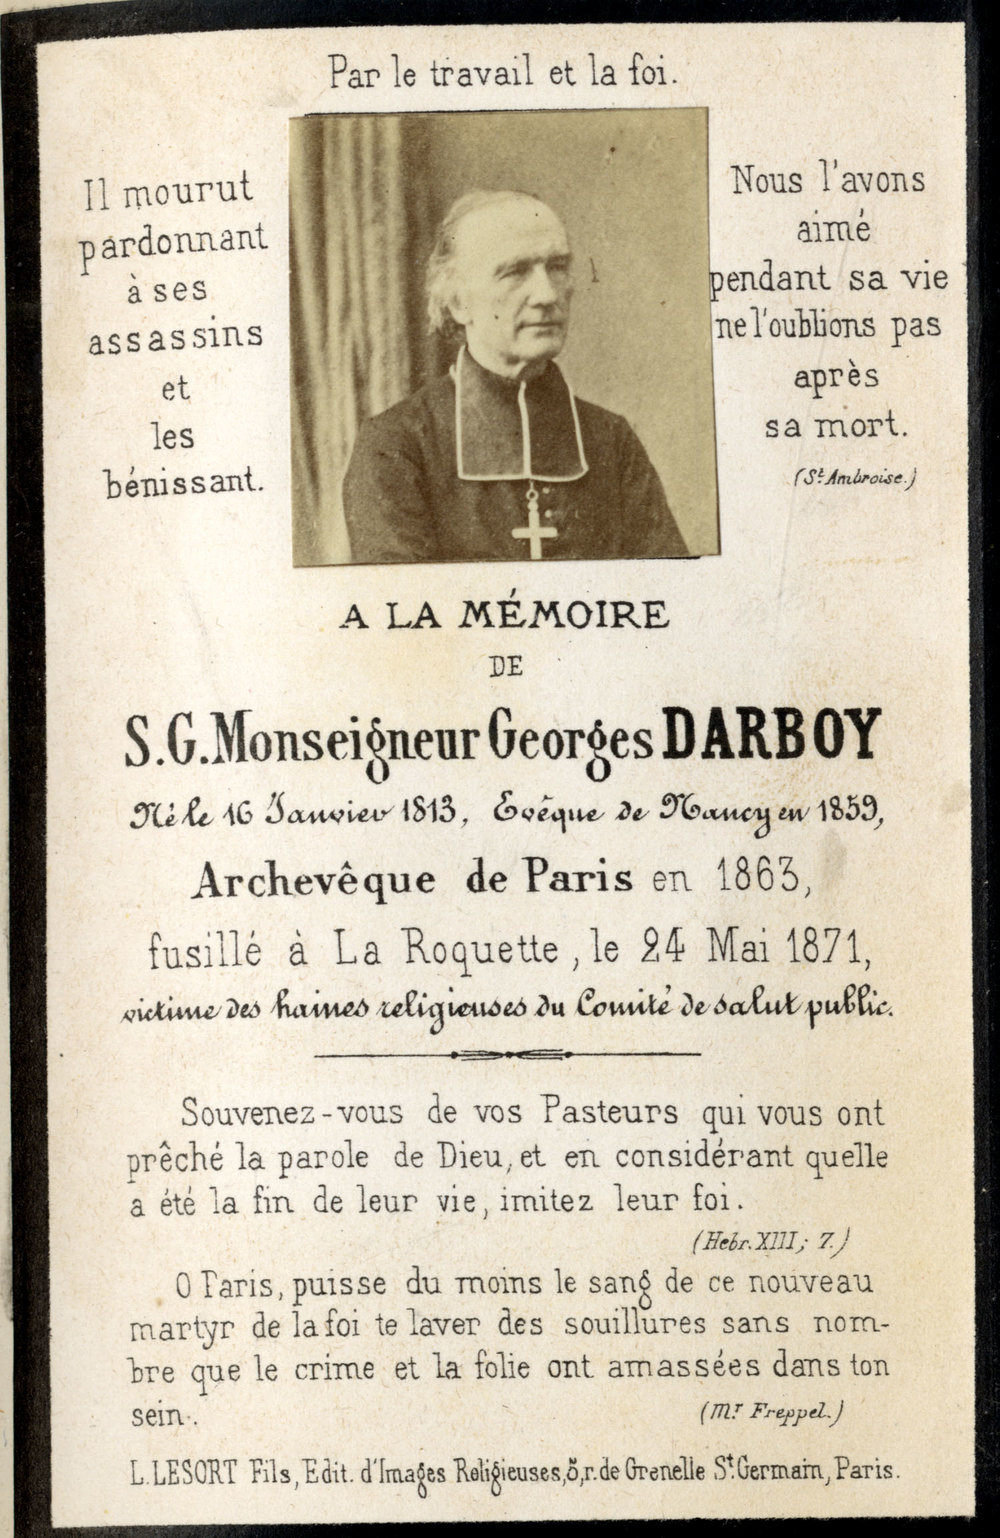 In memoriam cards - Paris Commune priests and others